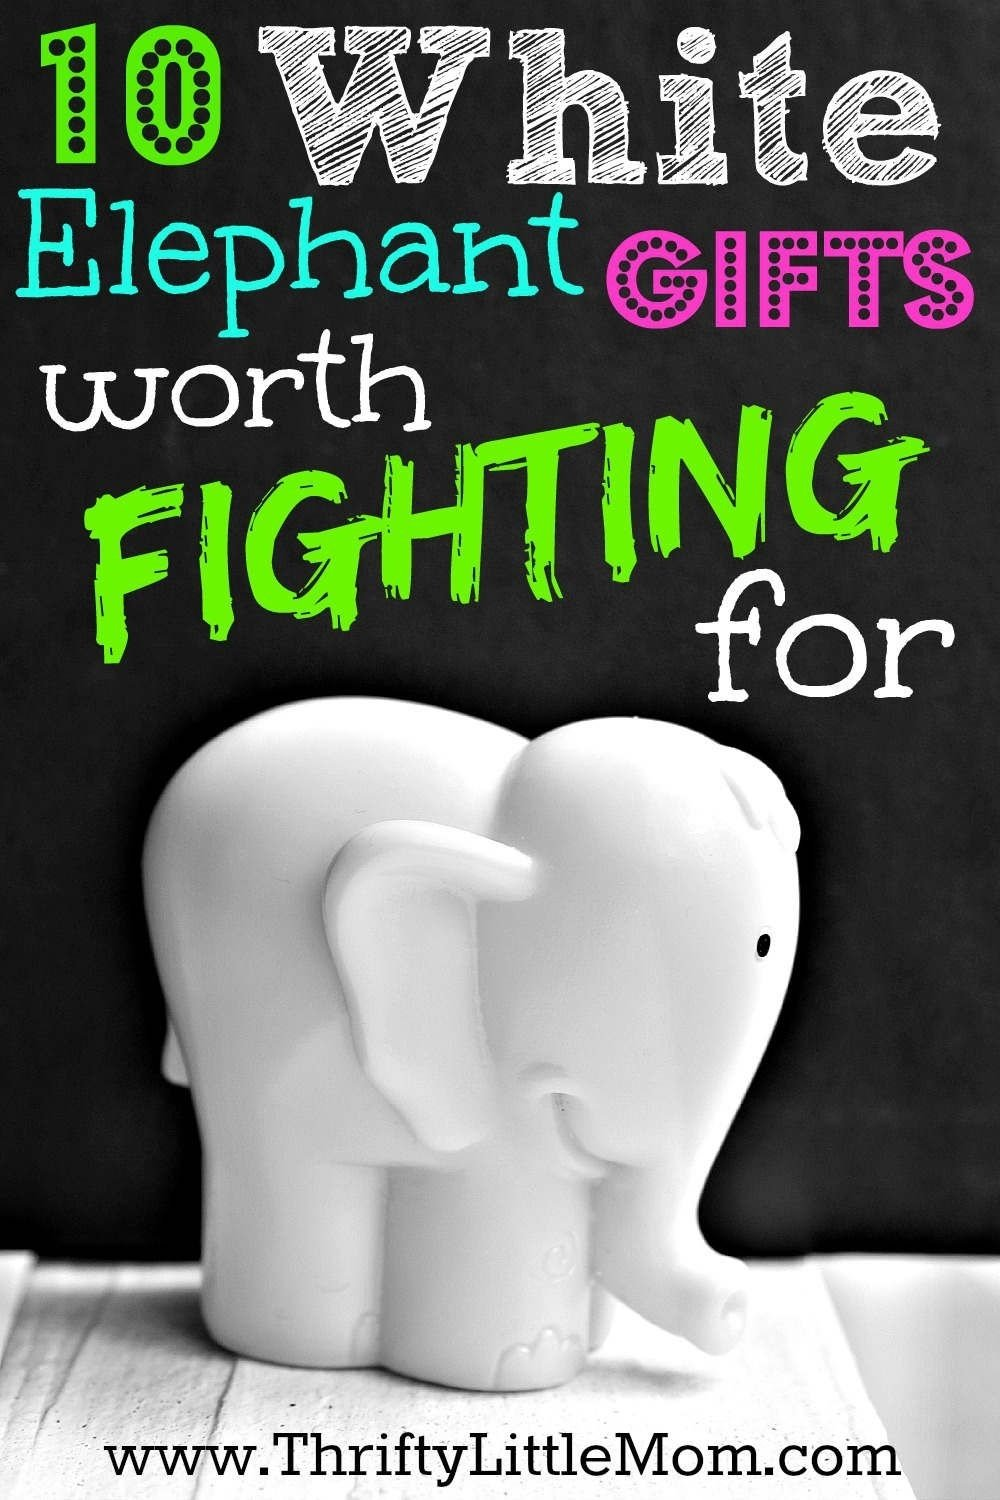 10 Perfect What Is A White Elephant Gift Ideas white elephant gifts worth fighting for yankee swap ideas white 33 2020